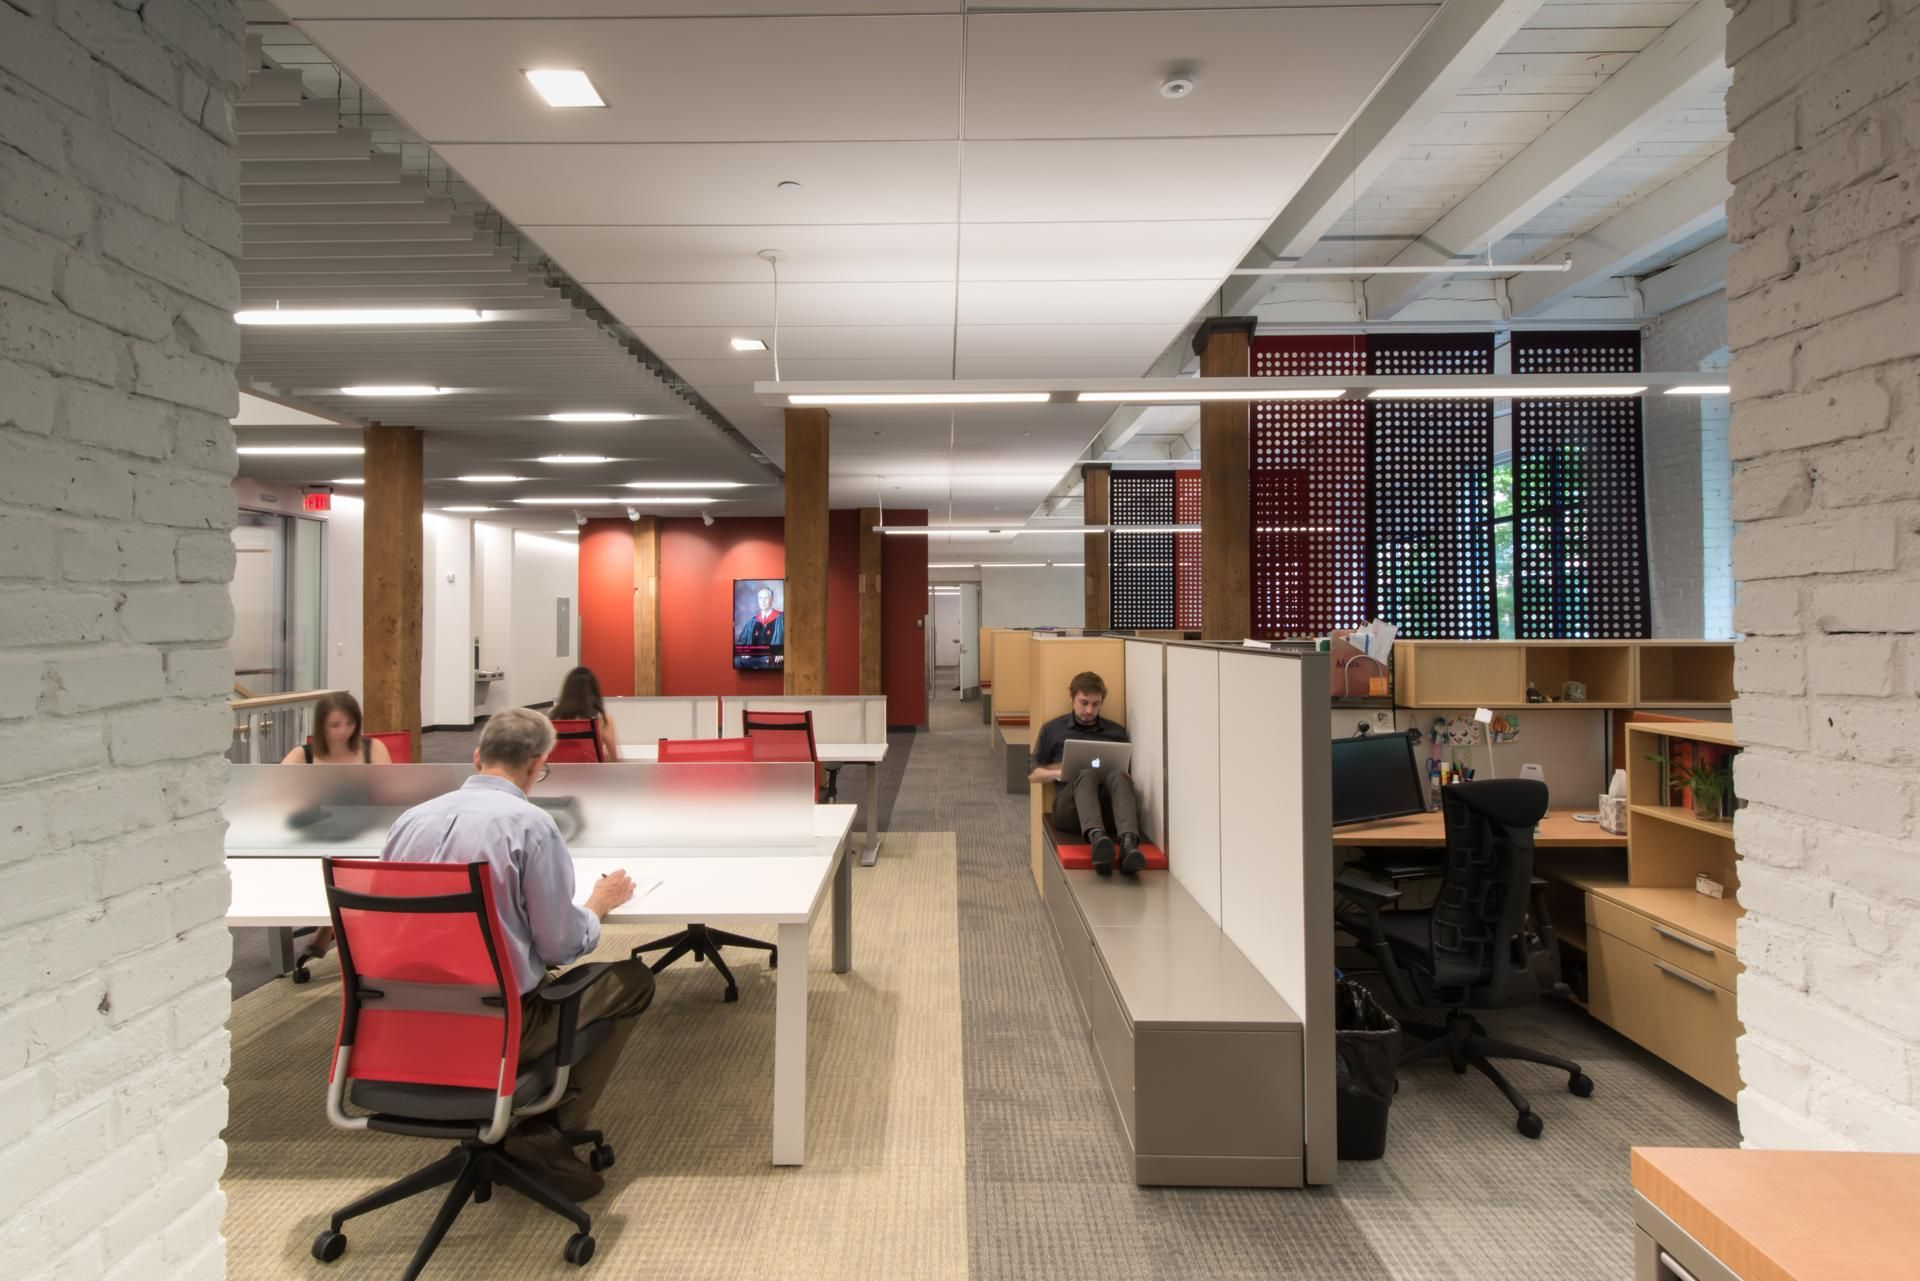 tech office furniture. Collision Zones, Booths, And Transparency Are The Buzzwords Of Office Design - Style Tech Furniture I